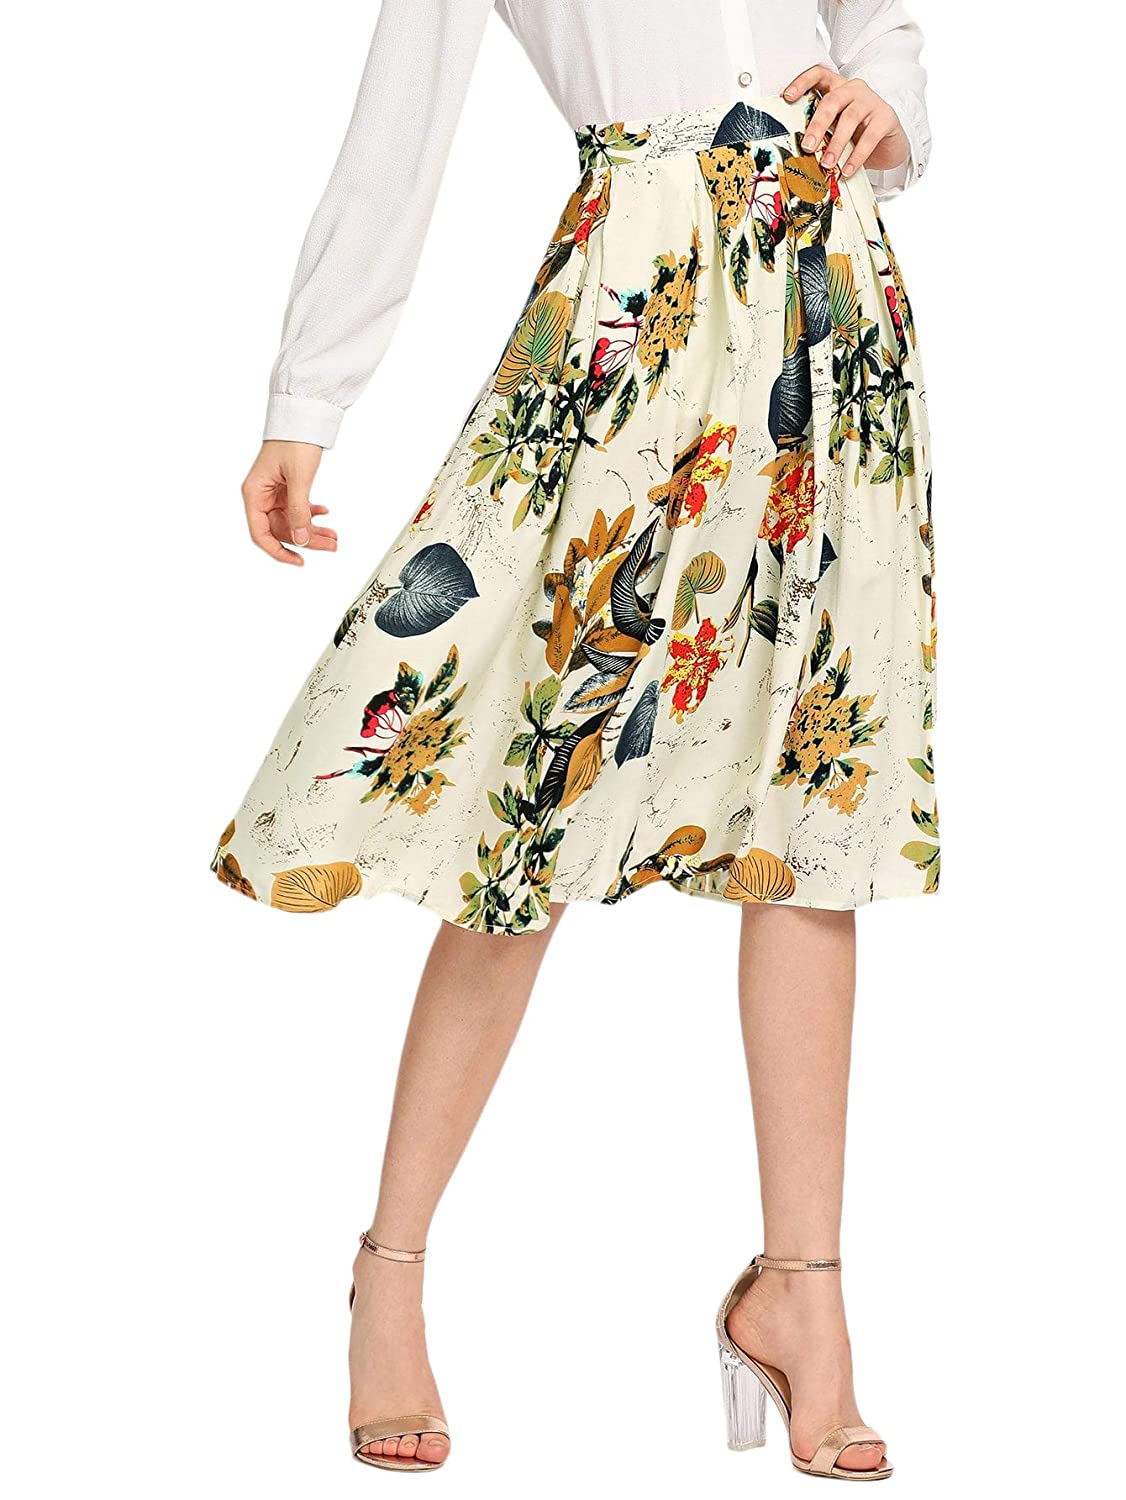 Floral White SheIn Women's Casual High Waist A Line Pleated Midi Skirt with Pockets